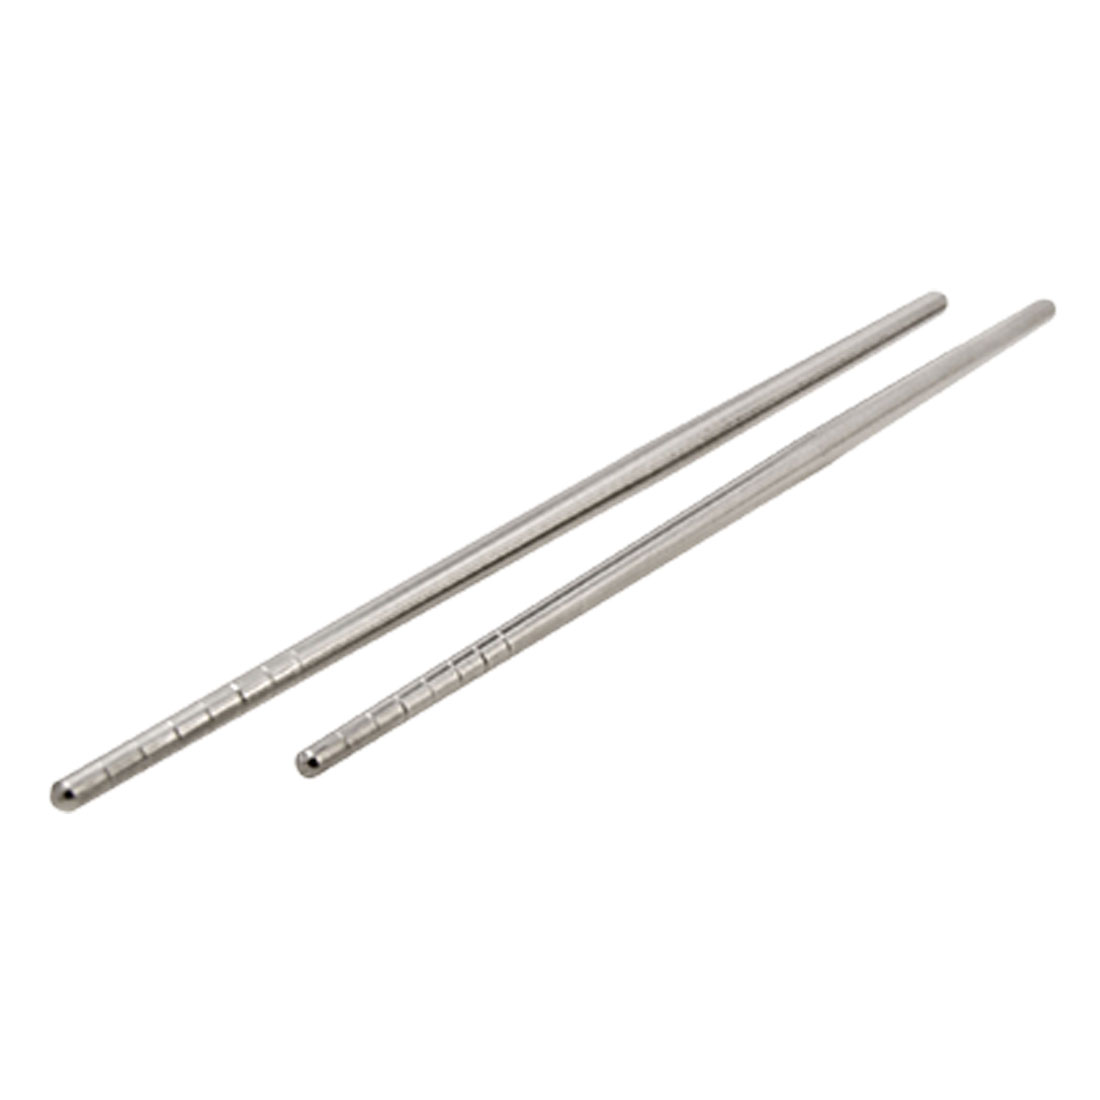 Stainless Steel Chinese Food Chopsticks Silvery Color